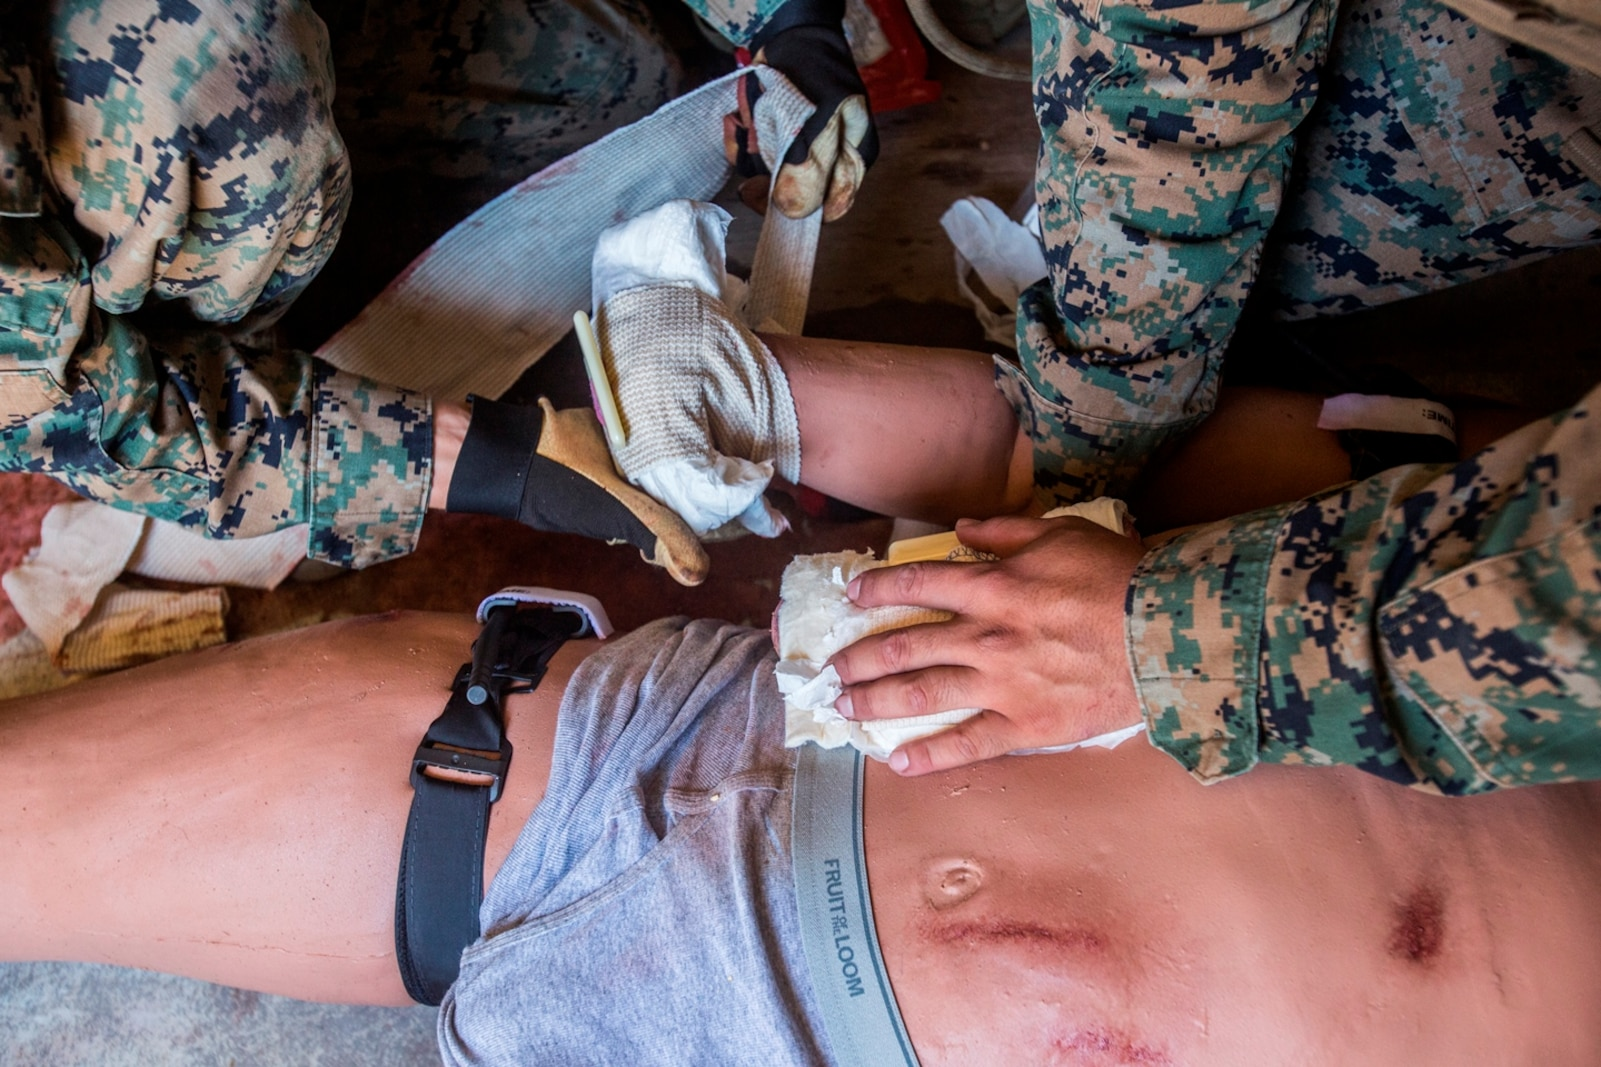 U.S. Marines treat the wounds of a simulated casualty during a field medical training exercise on Marine Corps Base Camp Pendleton, Calif., Jul. 18, 2017. The trauma manikins provide students with are not only anatomically correct but allow training on various wounds to include amputation, sucking chest wounds, fractures, gunshot wounds, abdominal eviscerations and airway compromise due to facial trauma.